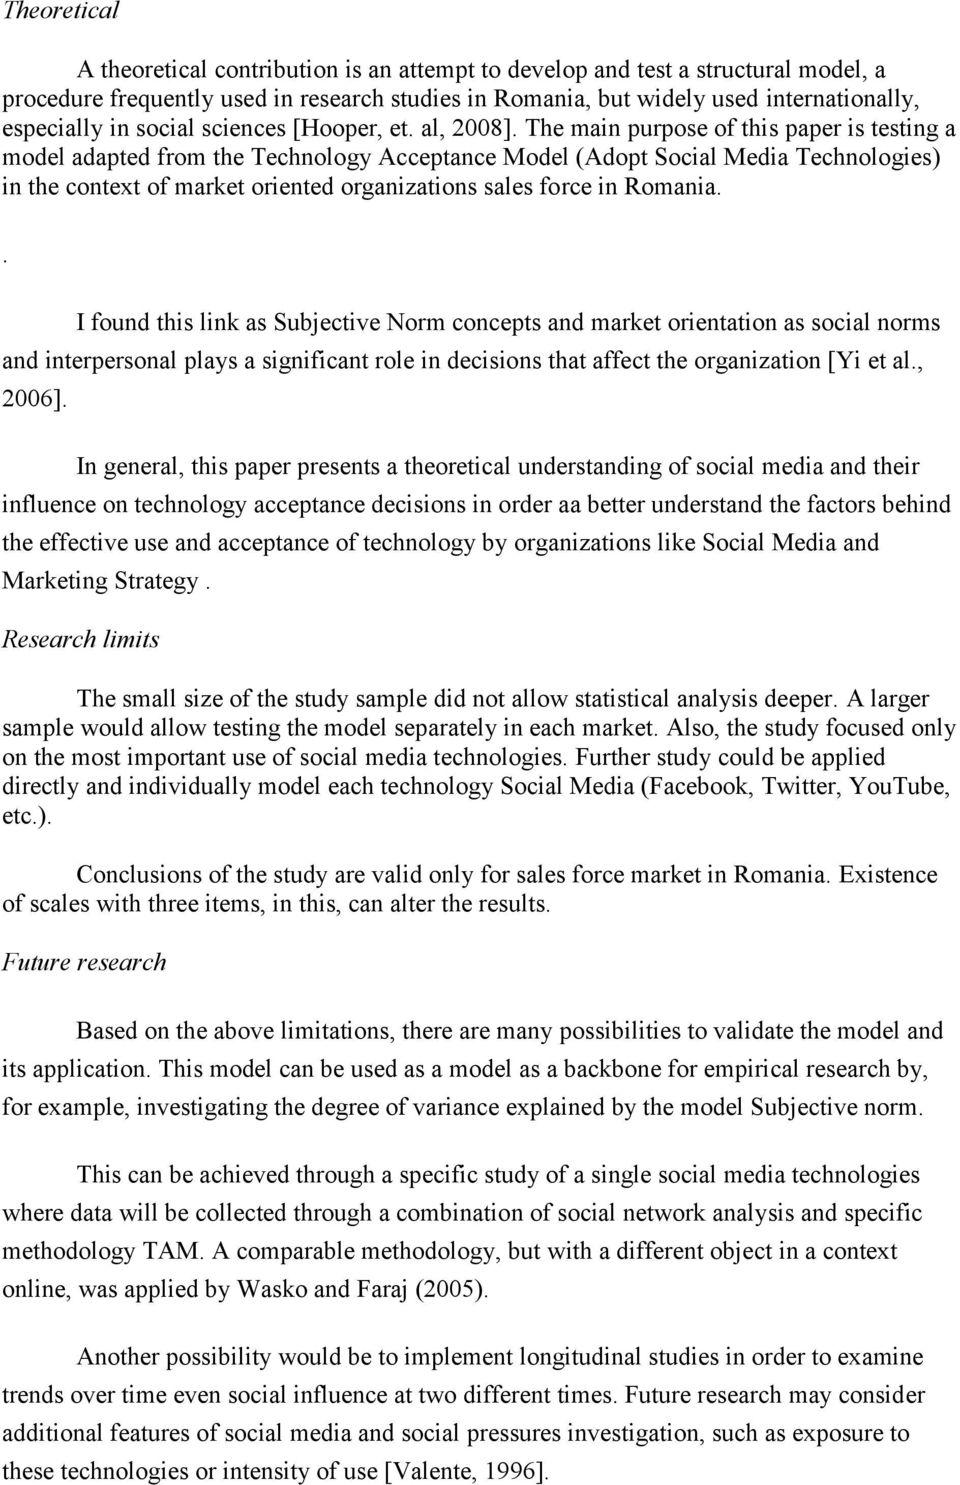 The main purpose of this paper is testing a model adapted from the Technology Acceptance Model (Adopt Social Media Technologies) in the context of market oriented organizations sales force in Romania.